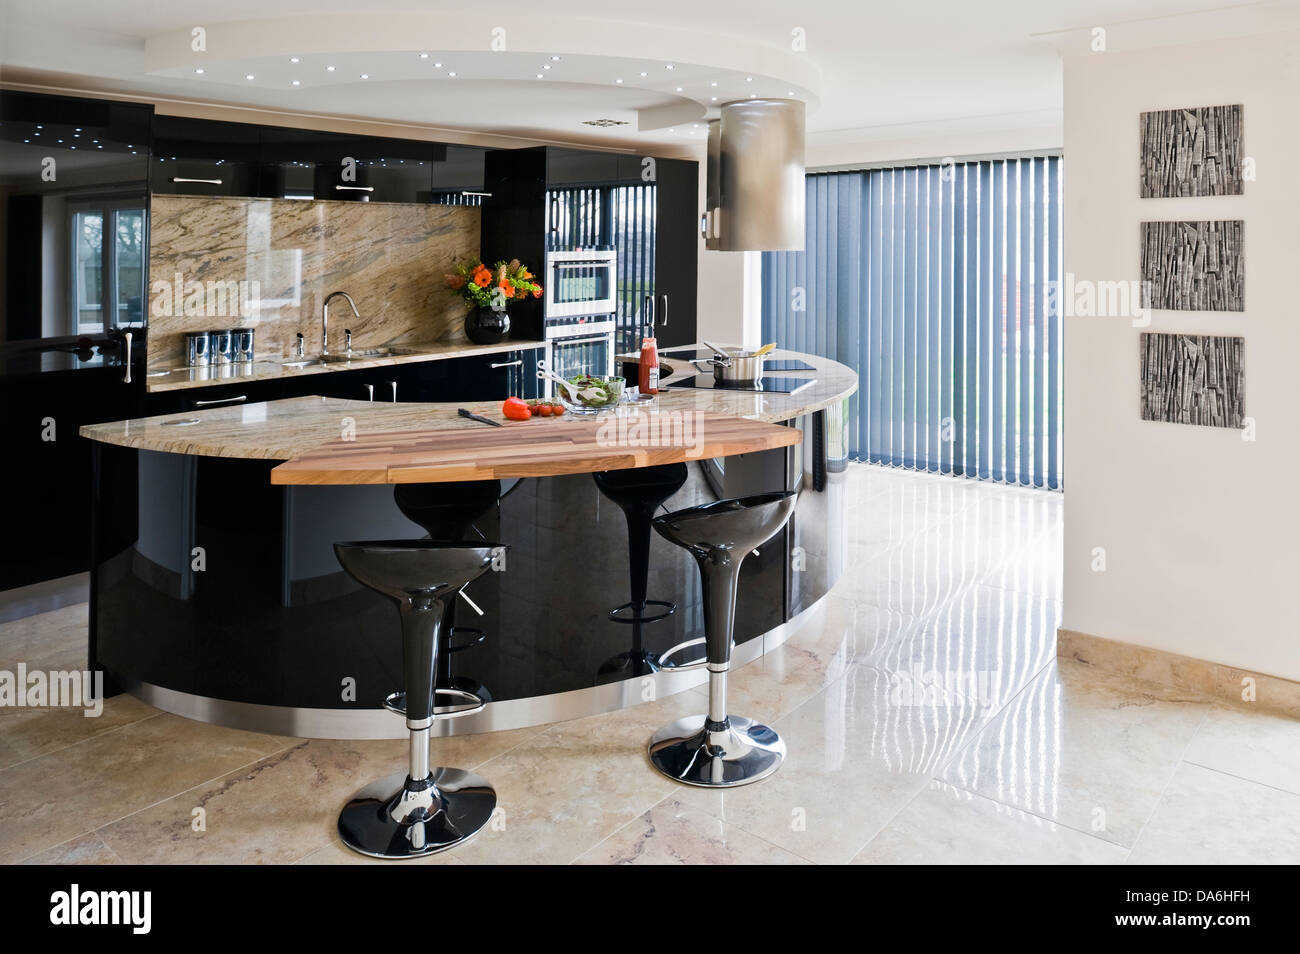 Pair Of Bomba Bar Stools At Breakfast Bar On Glossy Black Central Island  Unit In Modern Kitchen With Stone Flooring